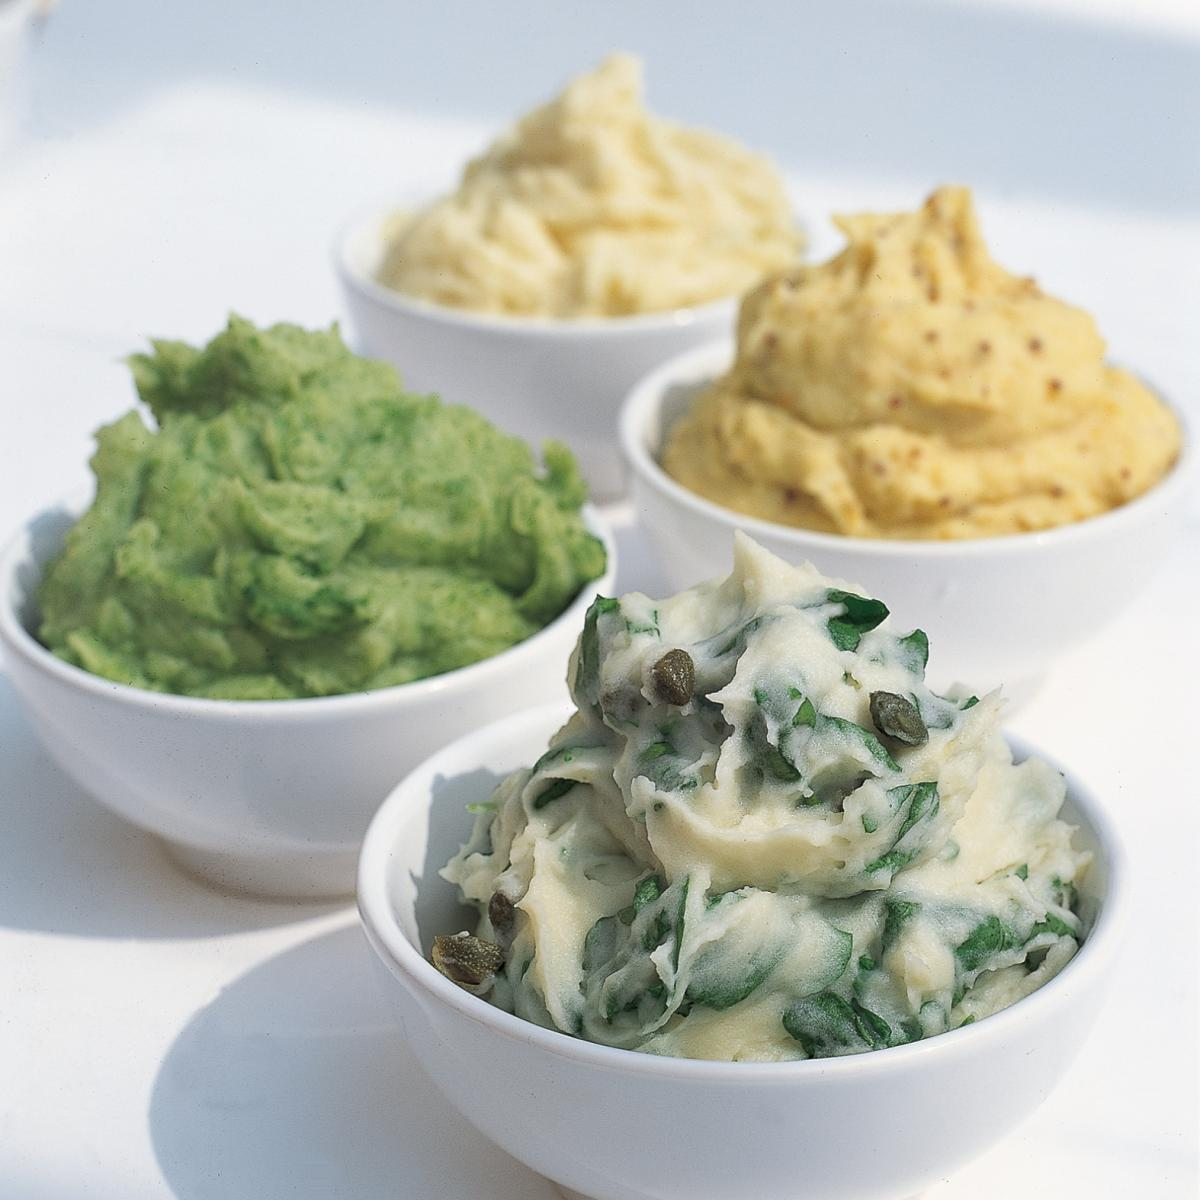 A picture of Delia's Green Parsley Mash recipe